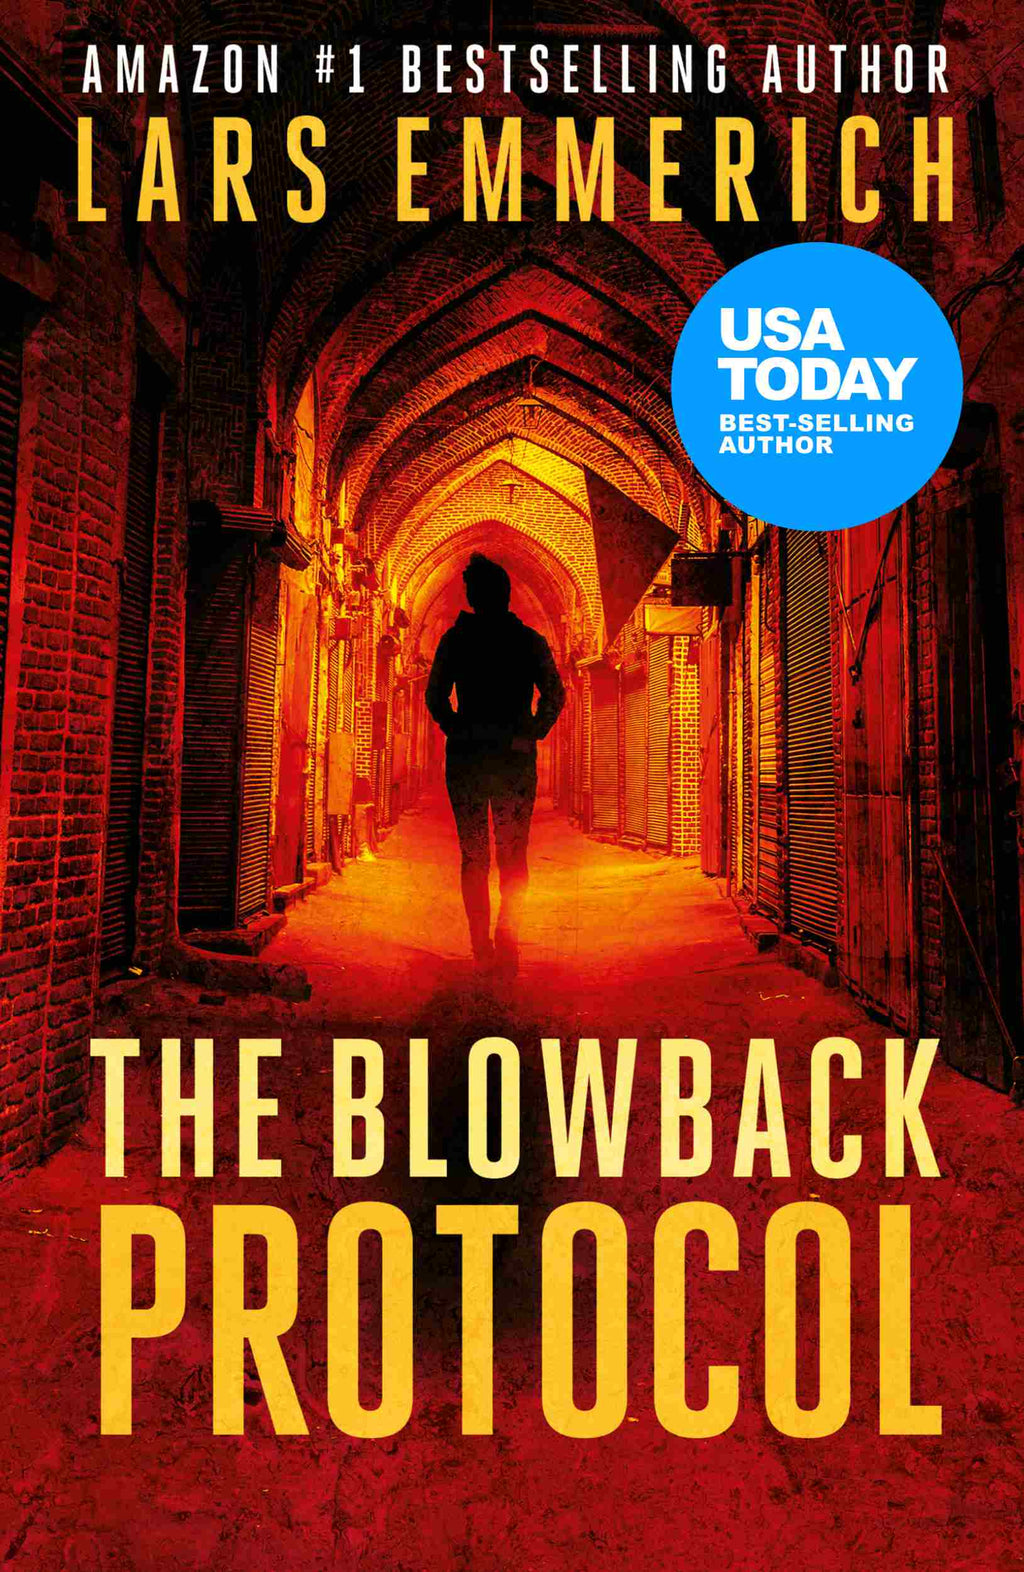 The Blowback Protocol (Paperback - Large Print)